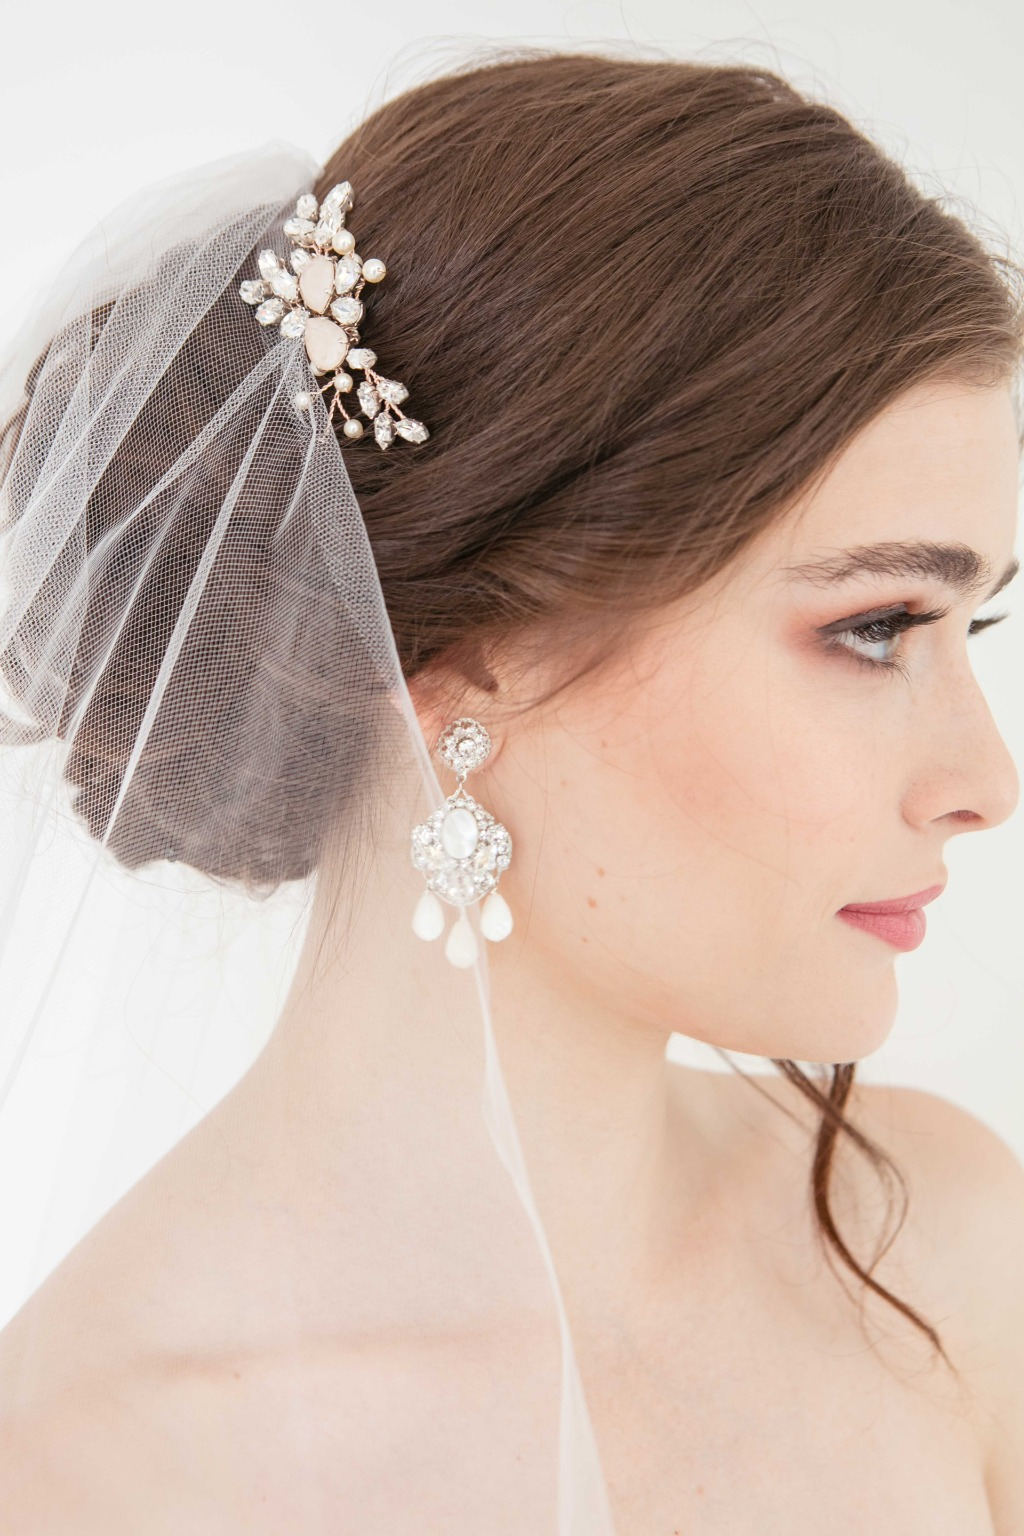 The beautiful bridal earrings and hair accessories from Laura Jayne! Click to learn more inspiration of bridal fashion look.